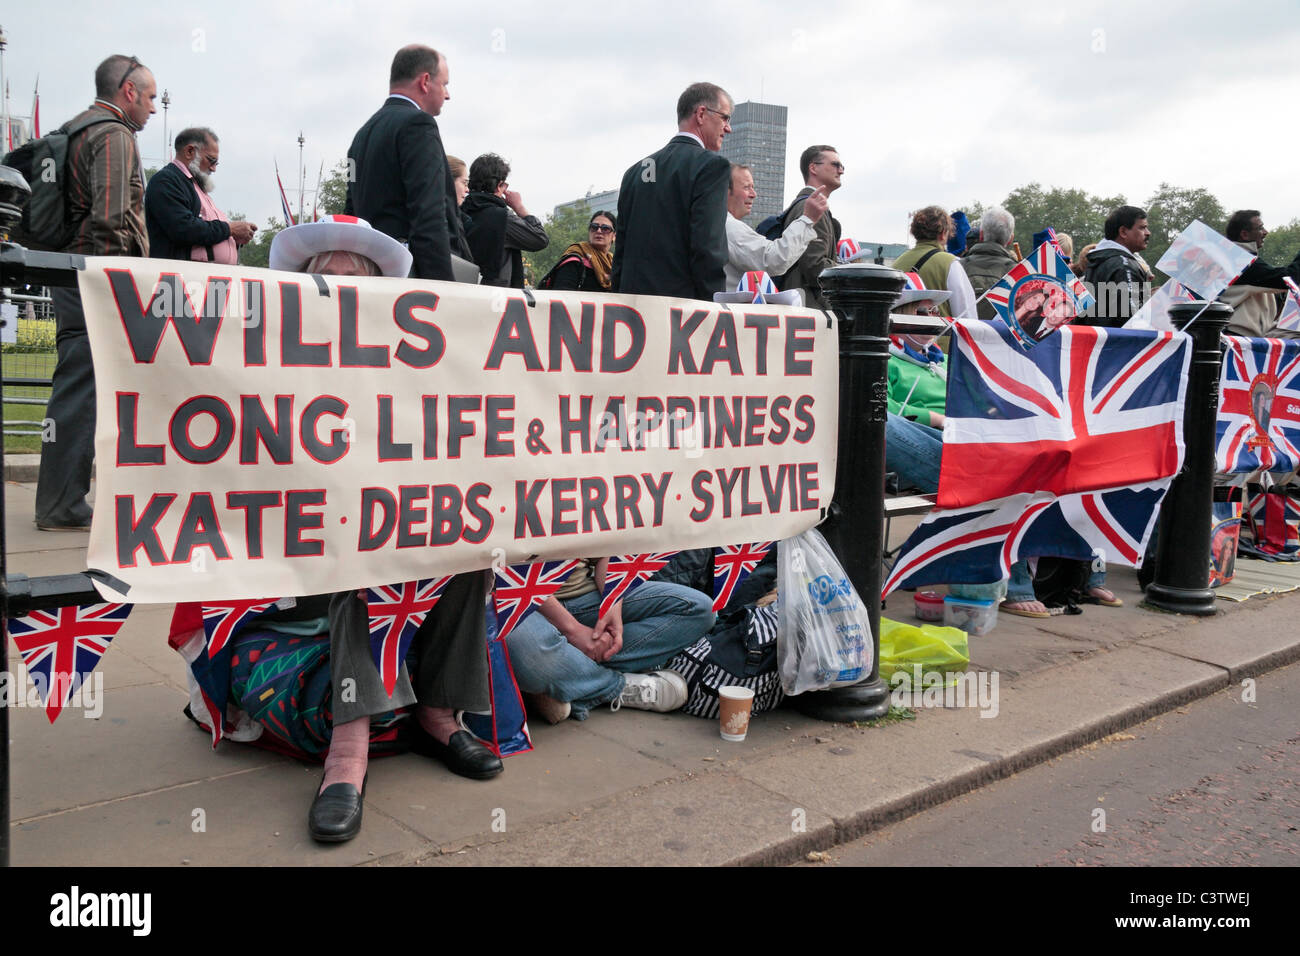 Royal Wedding fans with their banner outside Buckingham Palace the night before the Royal Wedding, April 2011. Stock Photo